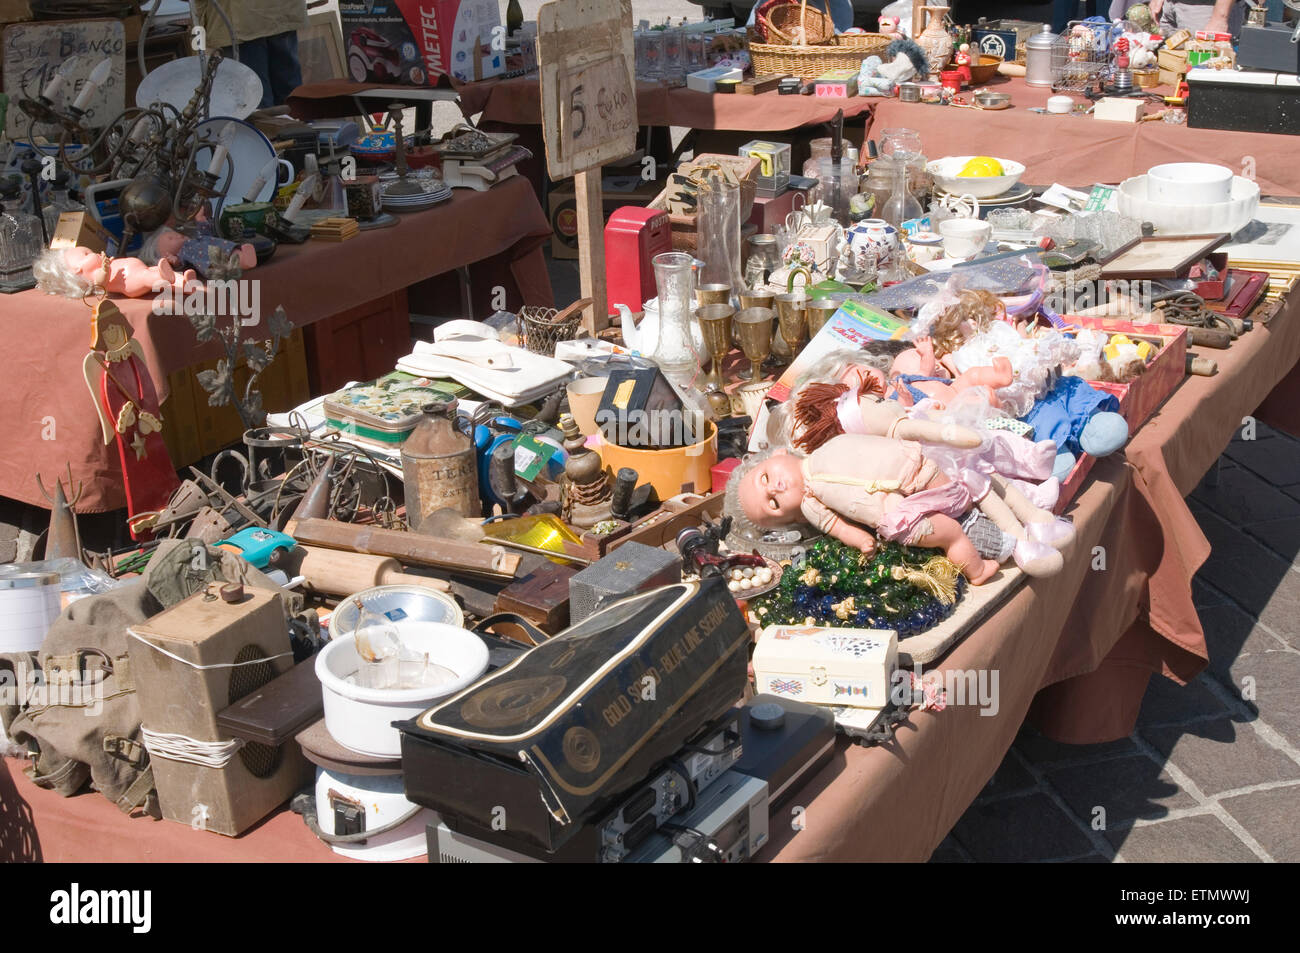 jumblesale sale sales jumble junk table top flee market junk yard ...